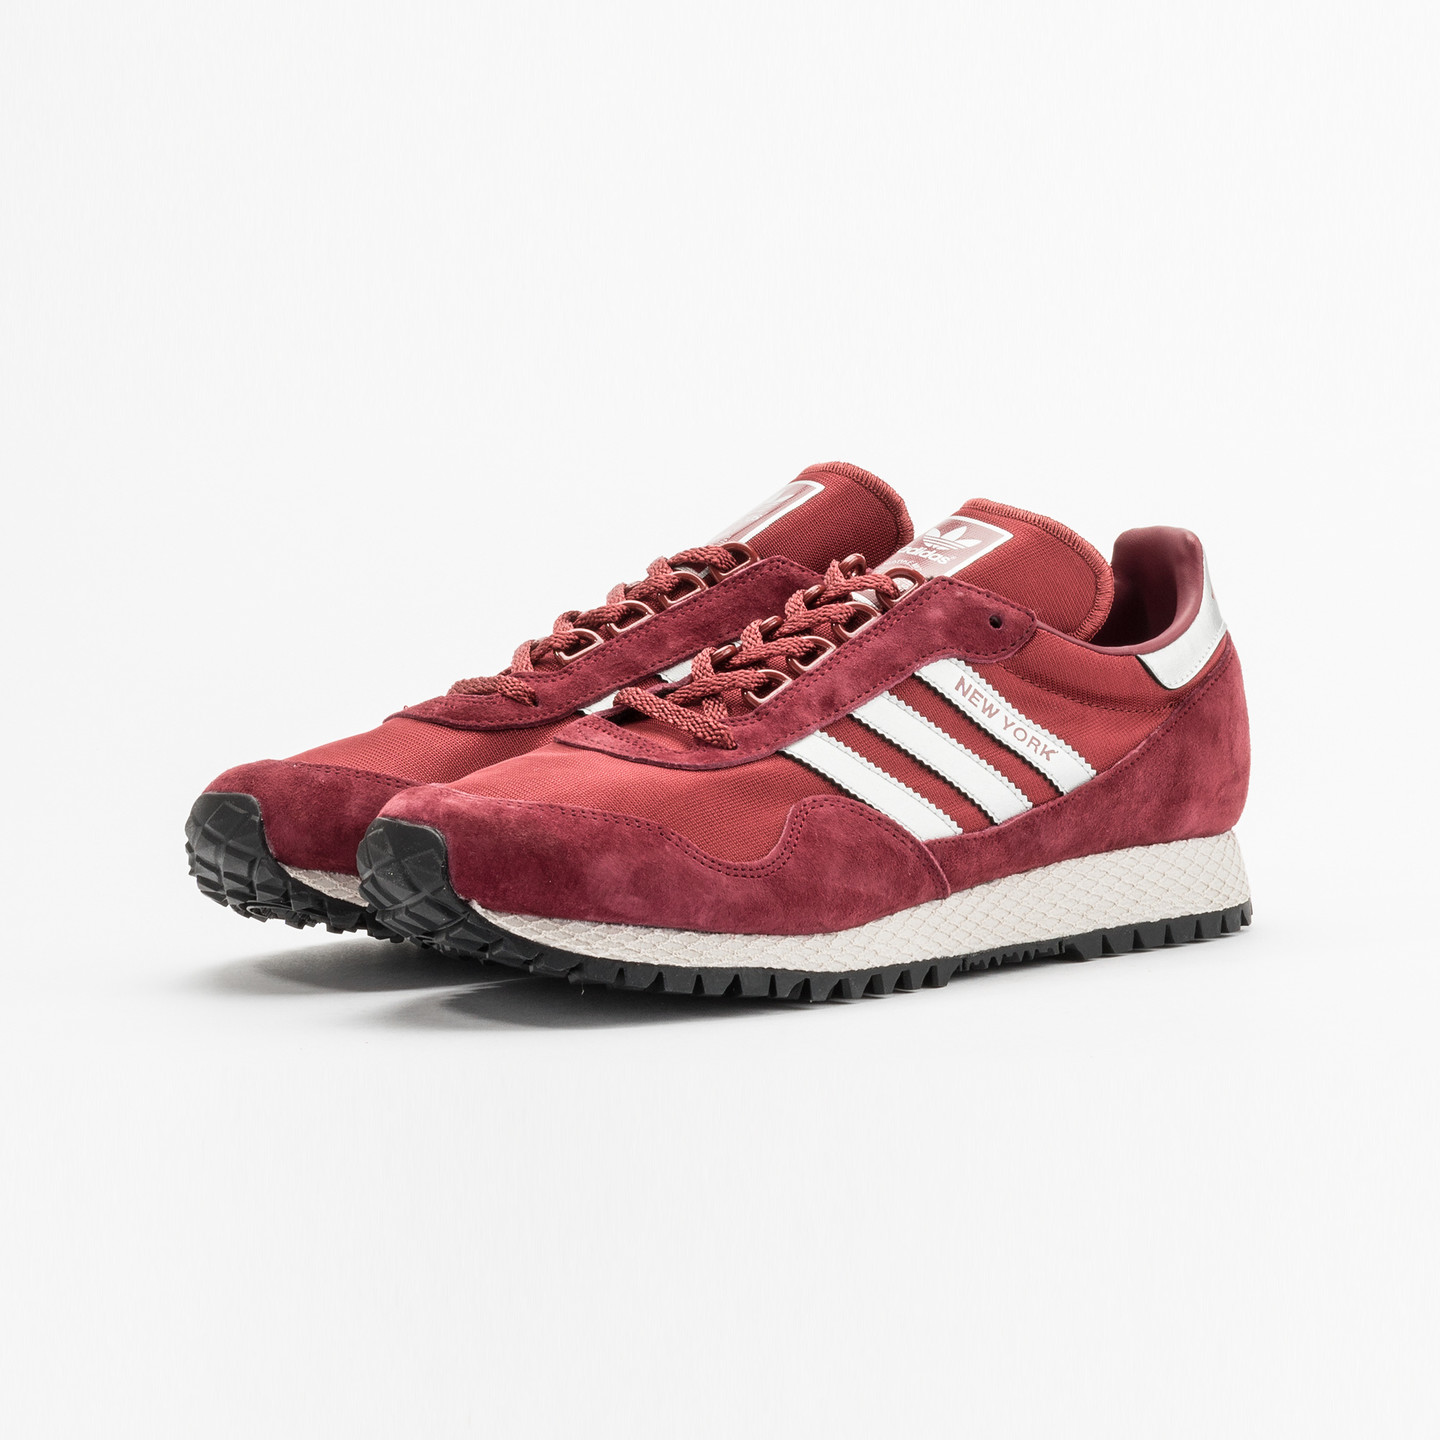 Adidas New York Collegiate Burgundy  / Metallic Silver BB1189